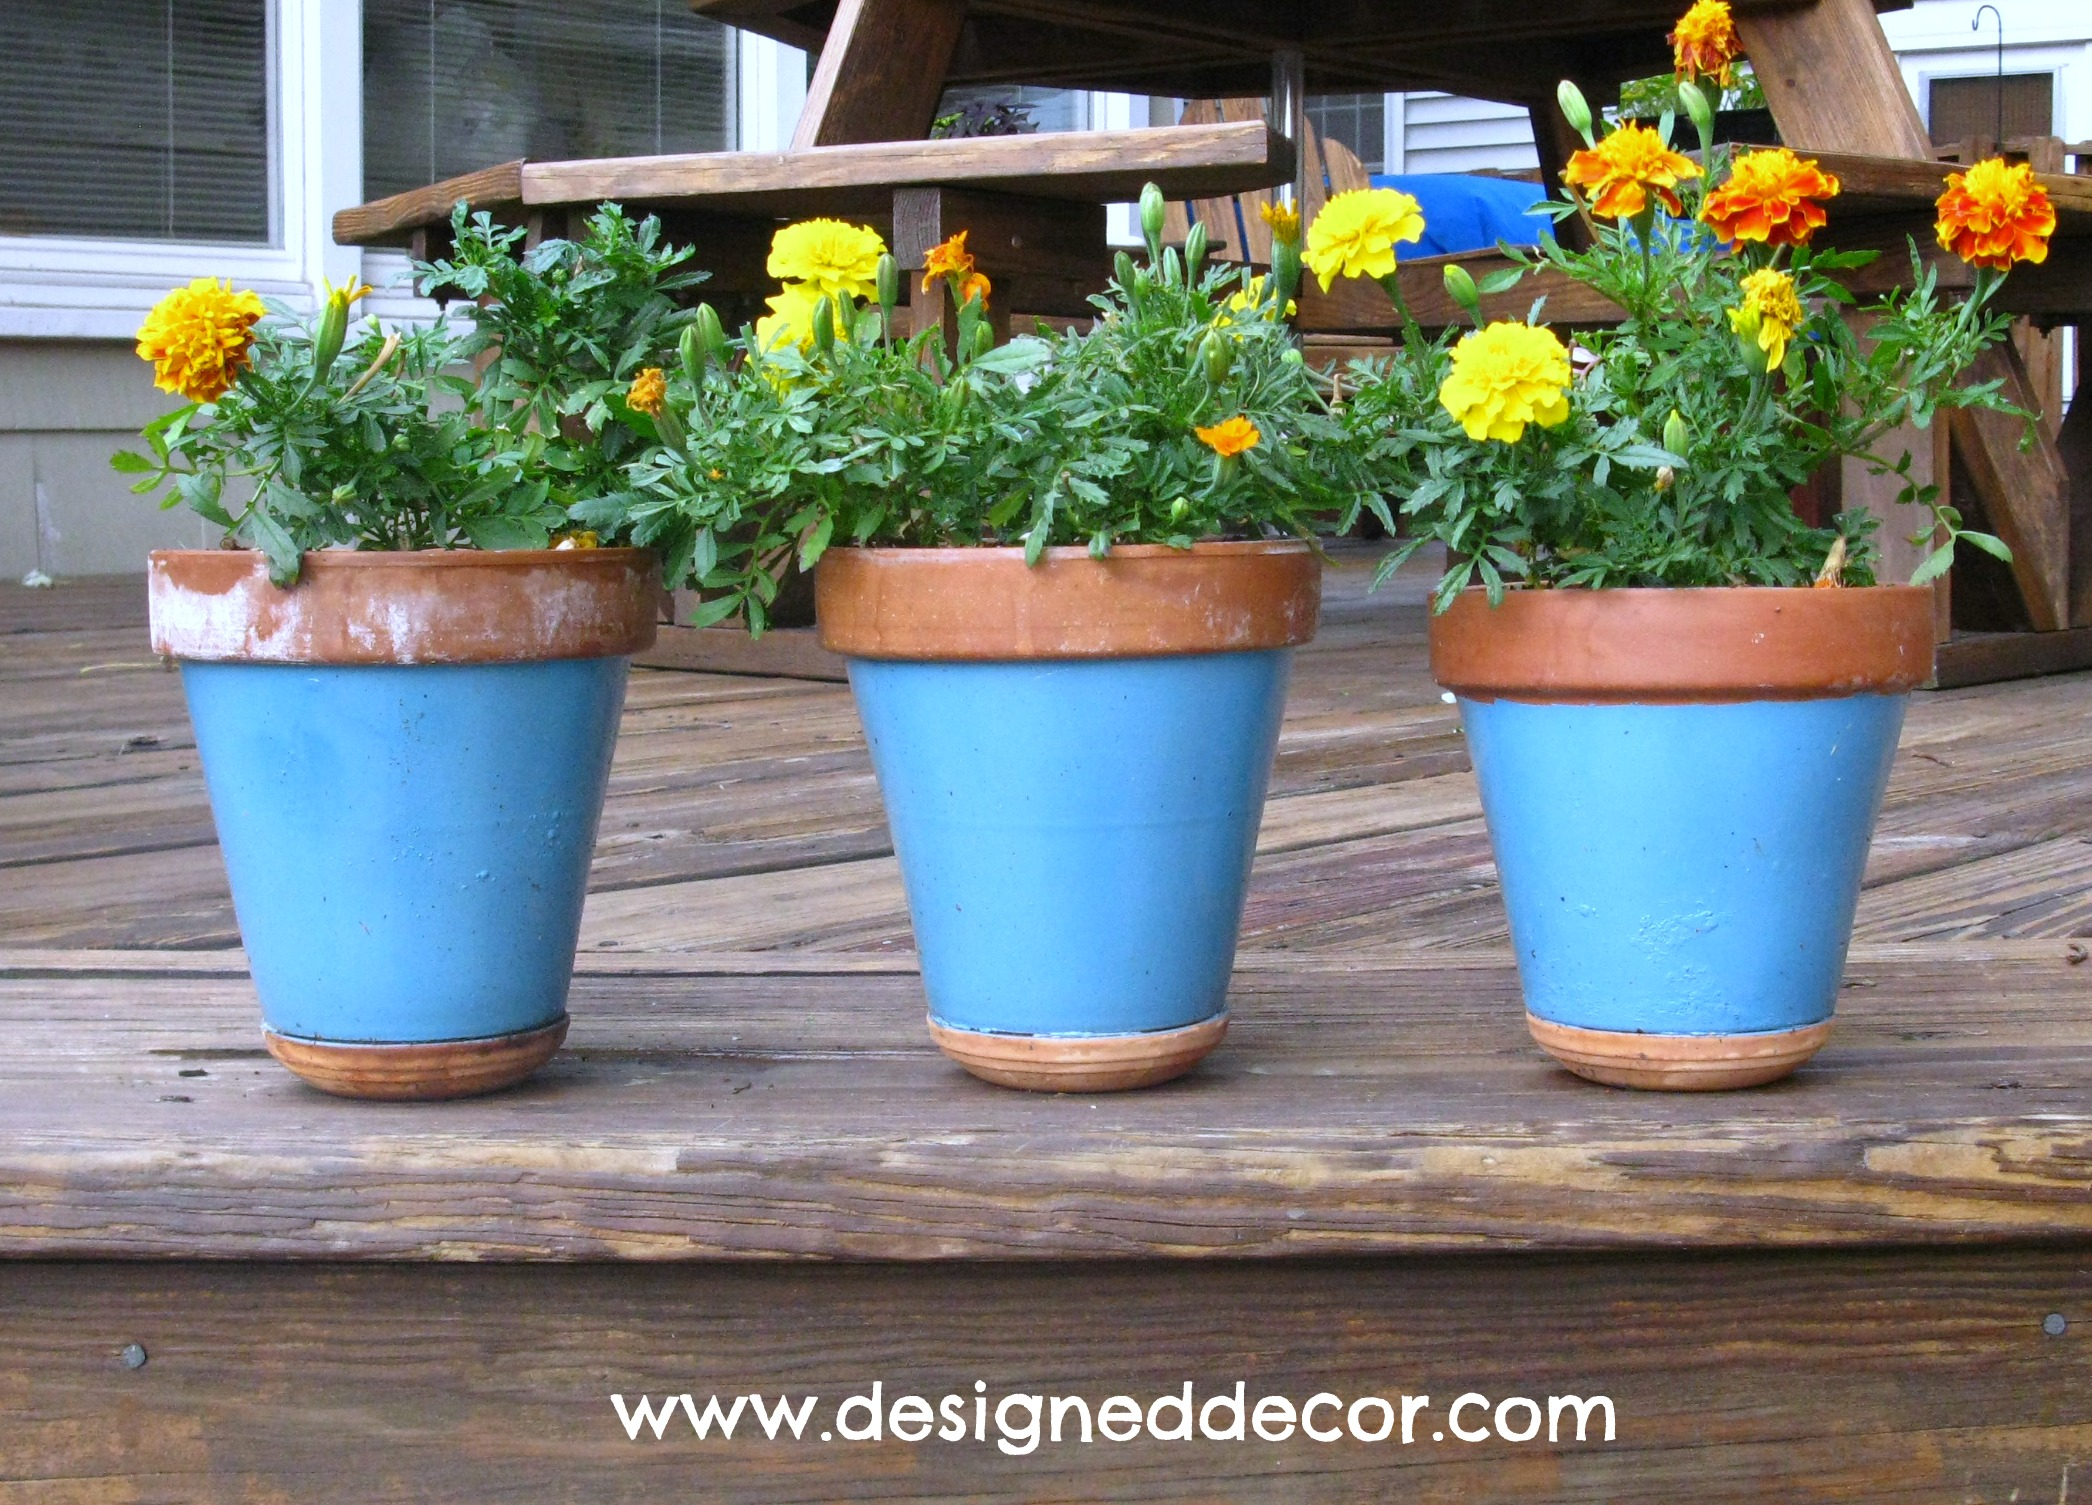 Painting Clay Pots Designed Decor